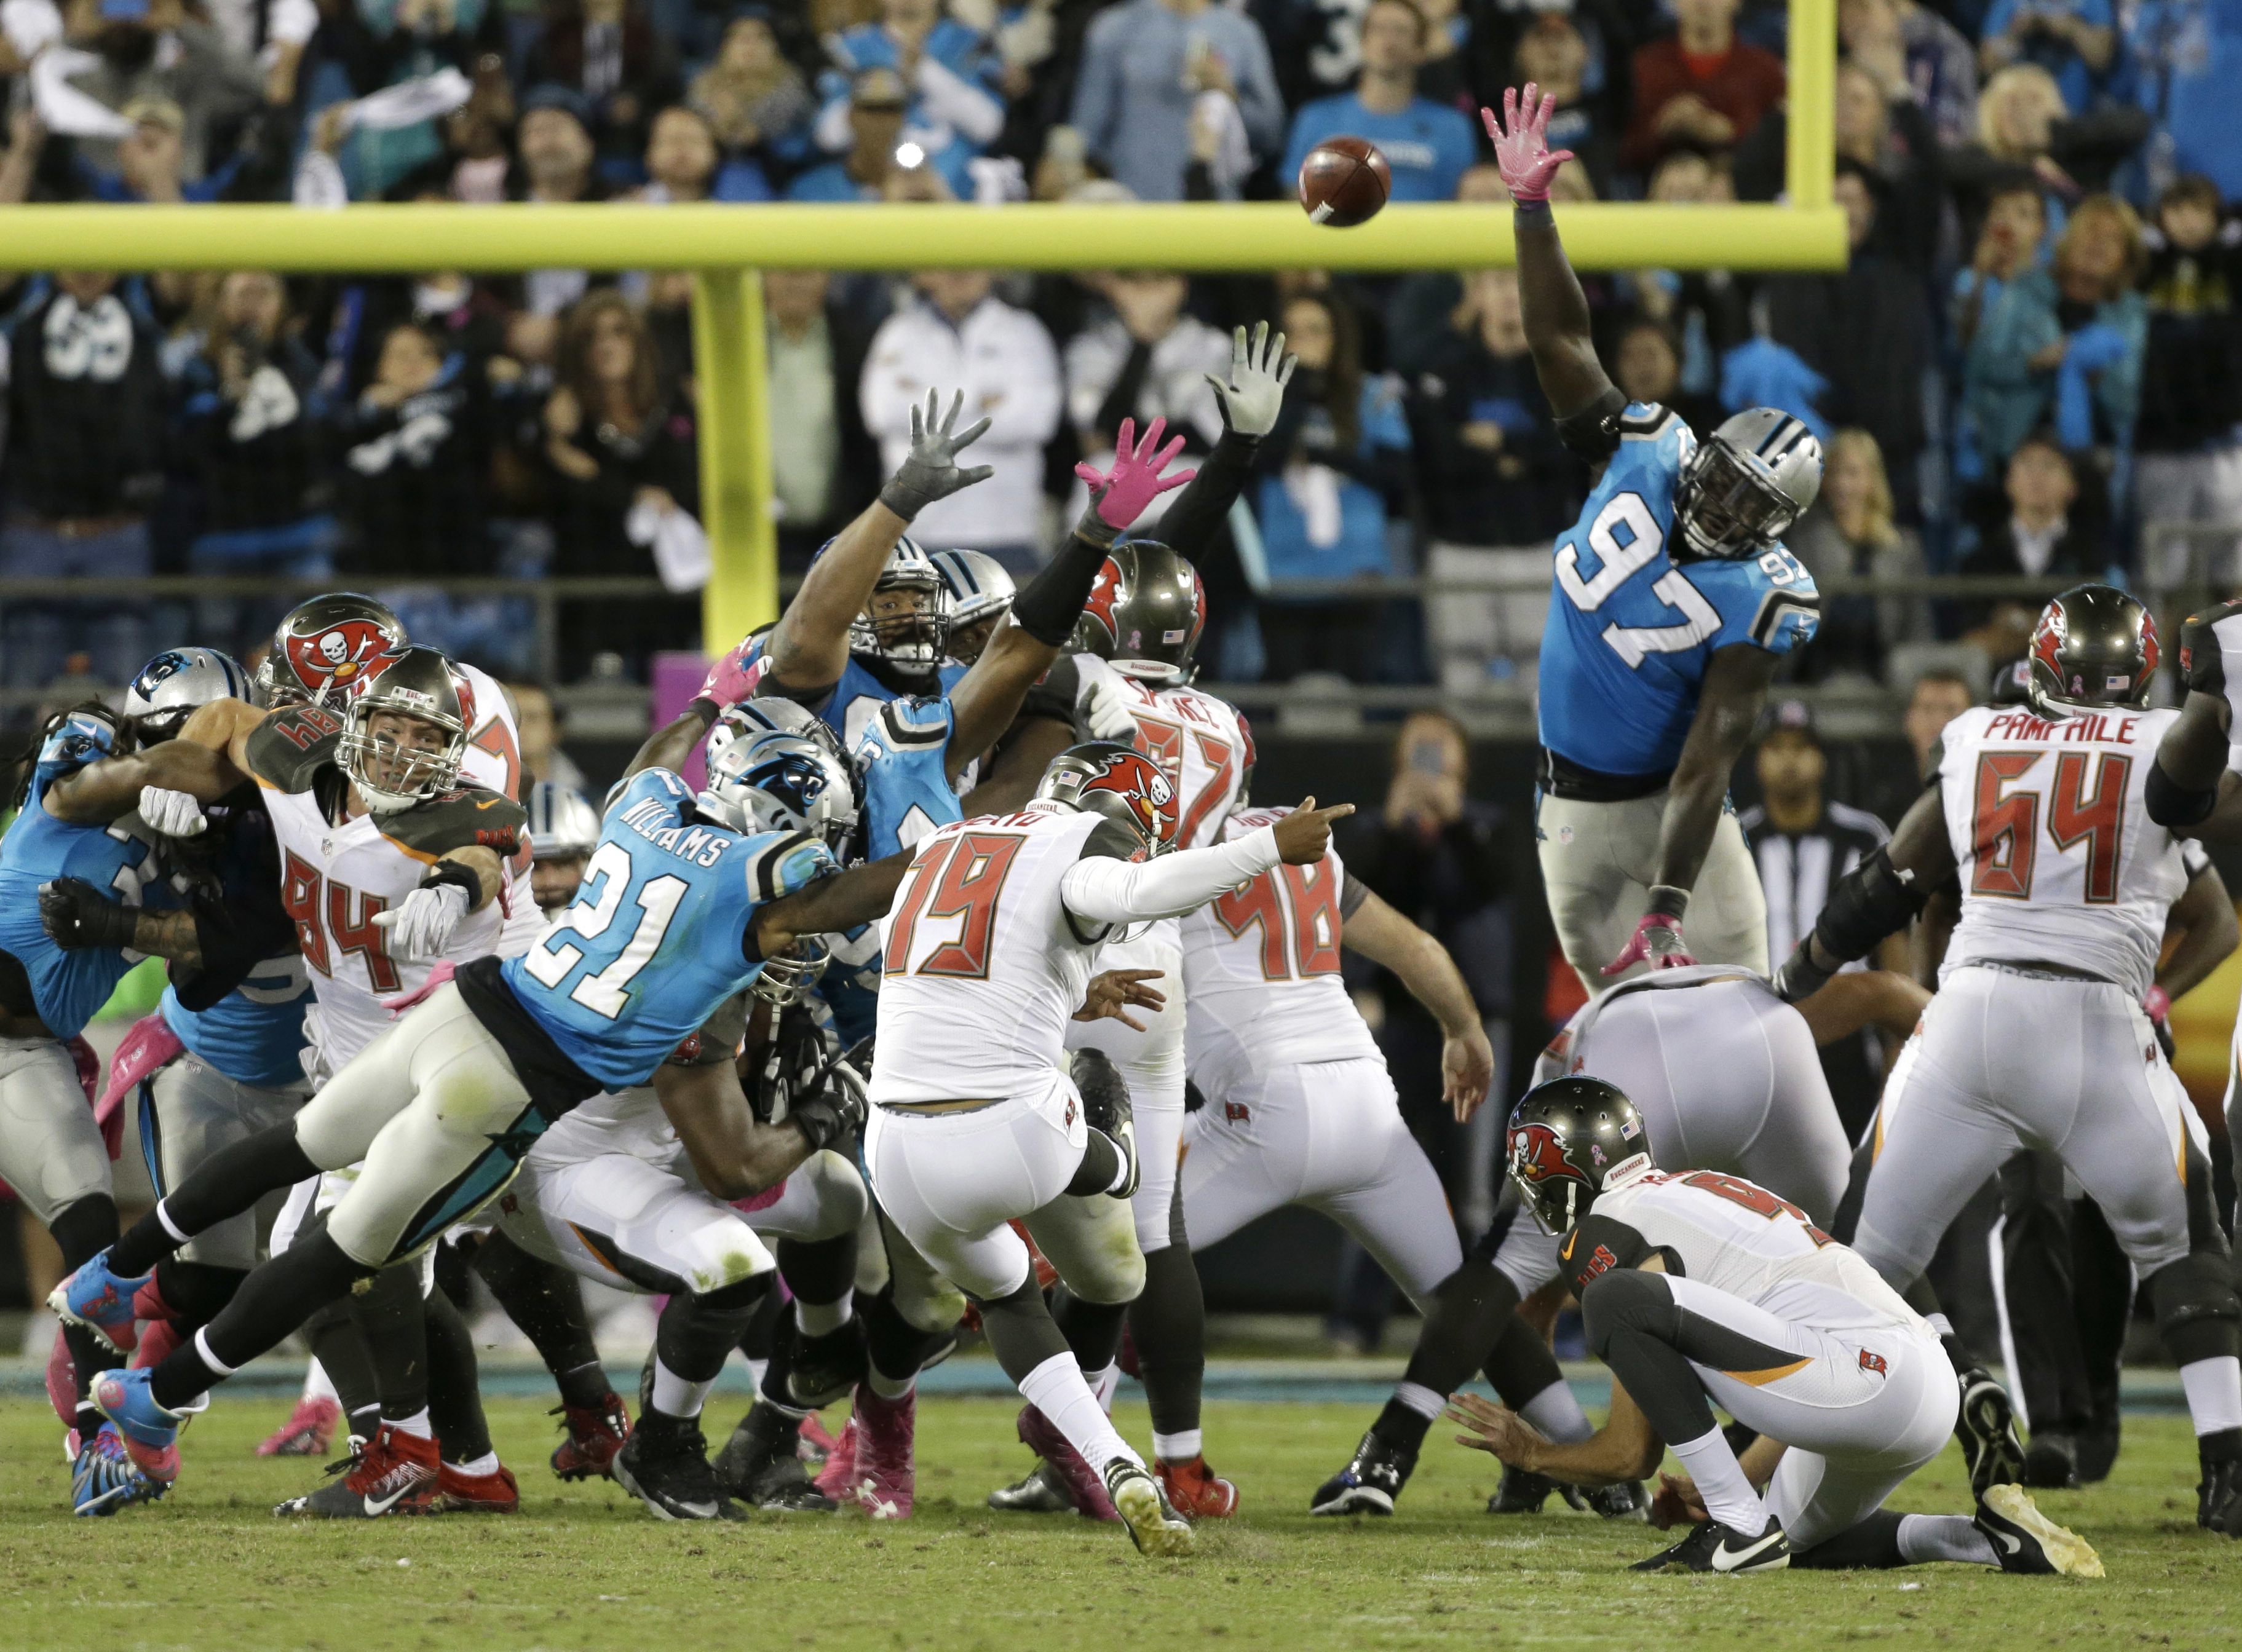 Tampa Bay Buccaneers' Roberto Aguayo (19) kicks the game-winning field goal against the Carolina Panthers in the final seconds of the second half of an NFL football game in Charlotte, N.C., Monday, Oct. 10, 2016. (AP Photo/Bob Leverone)